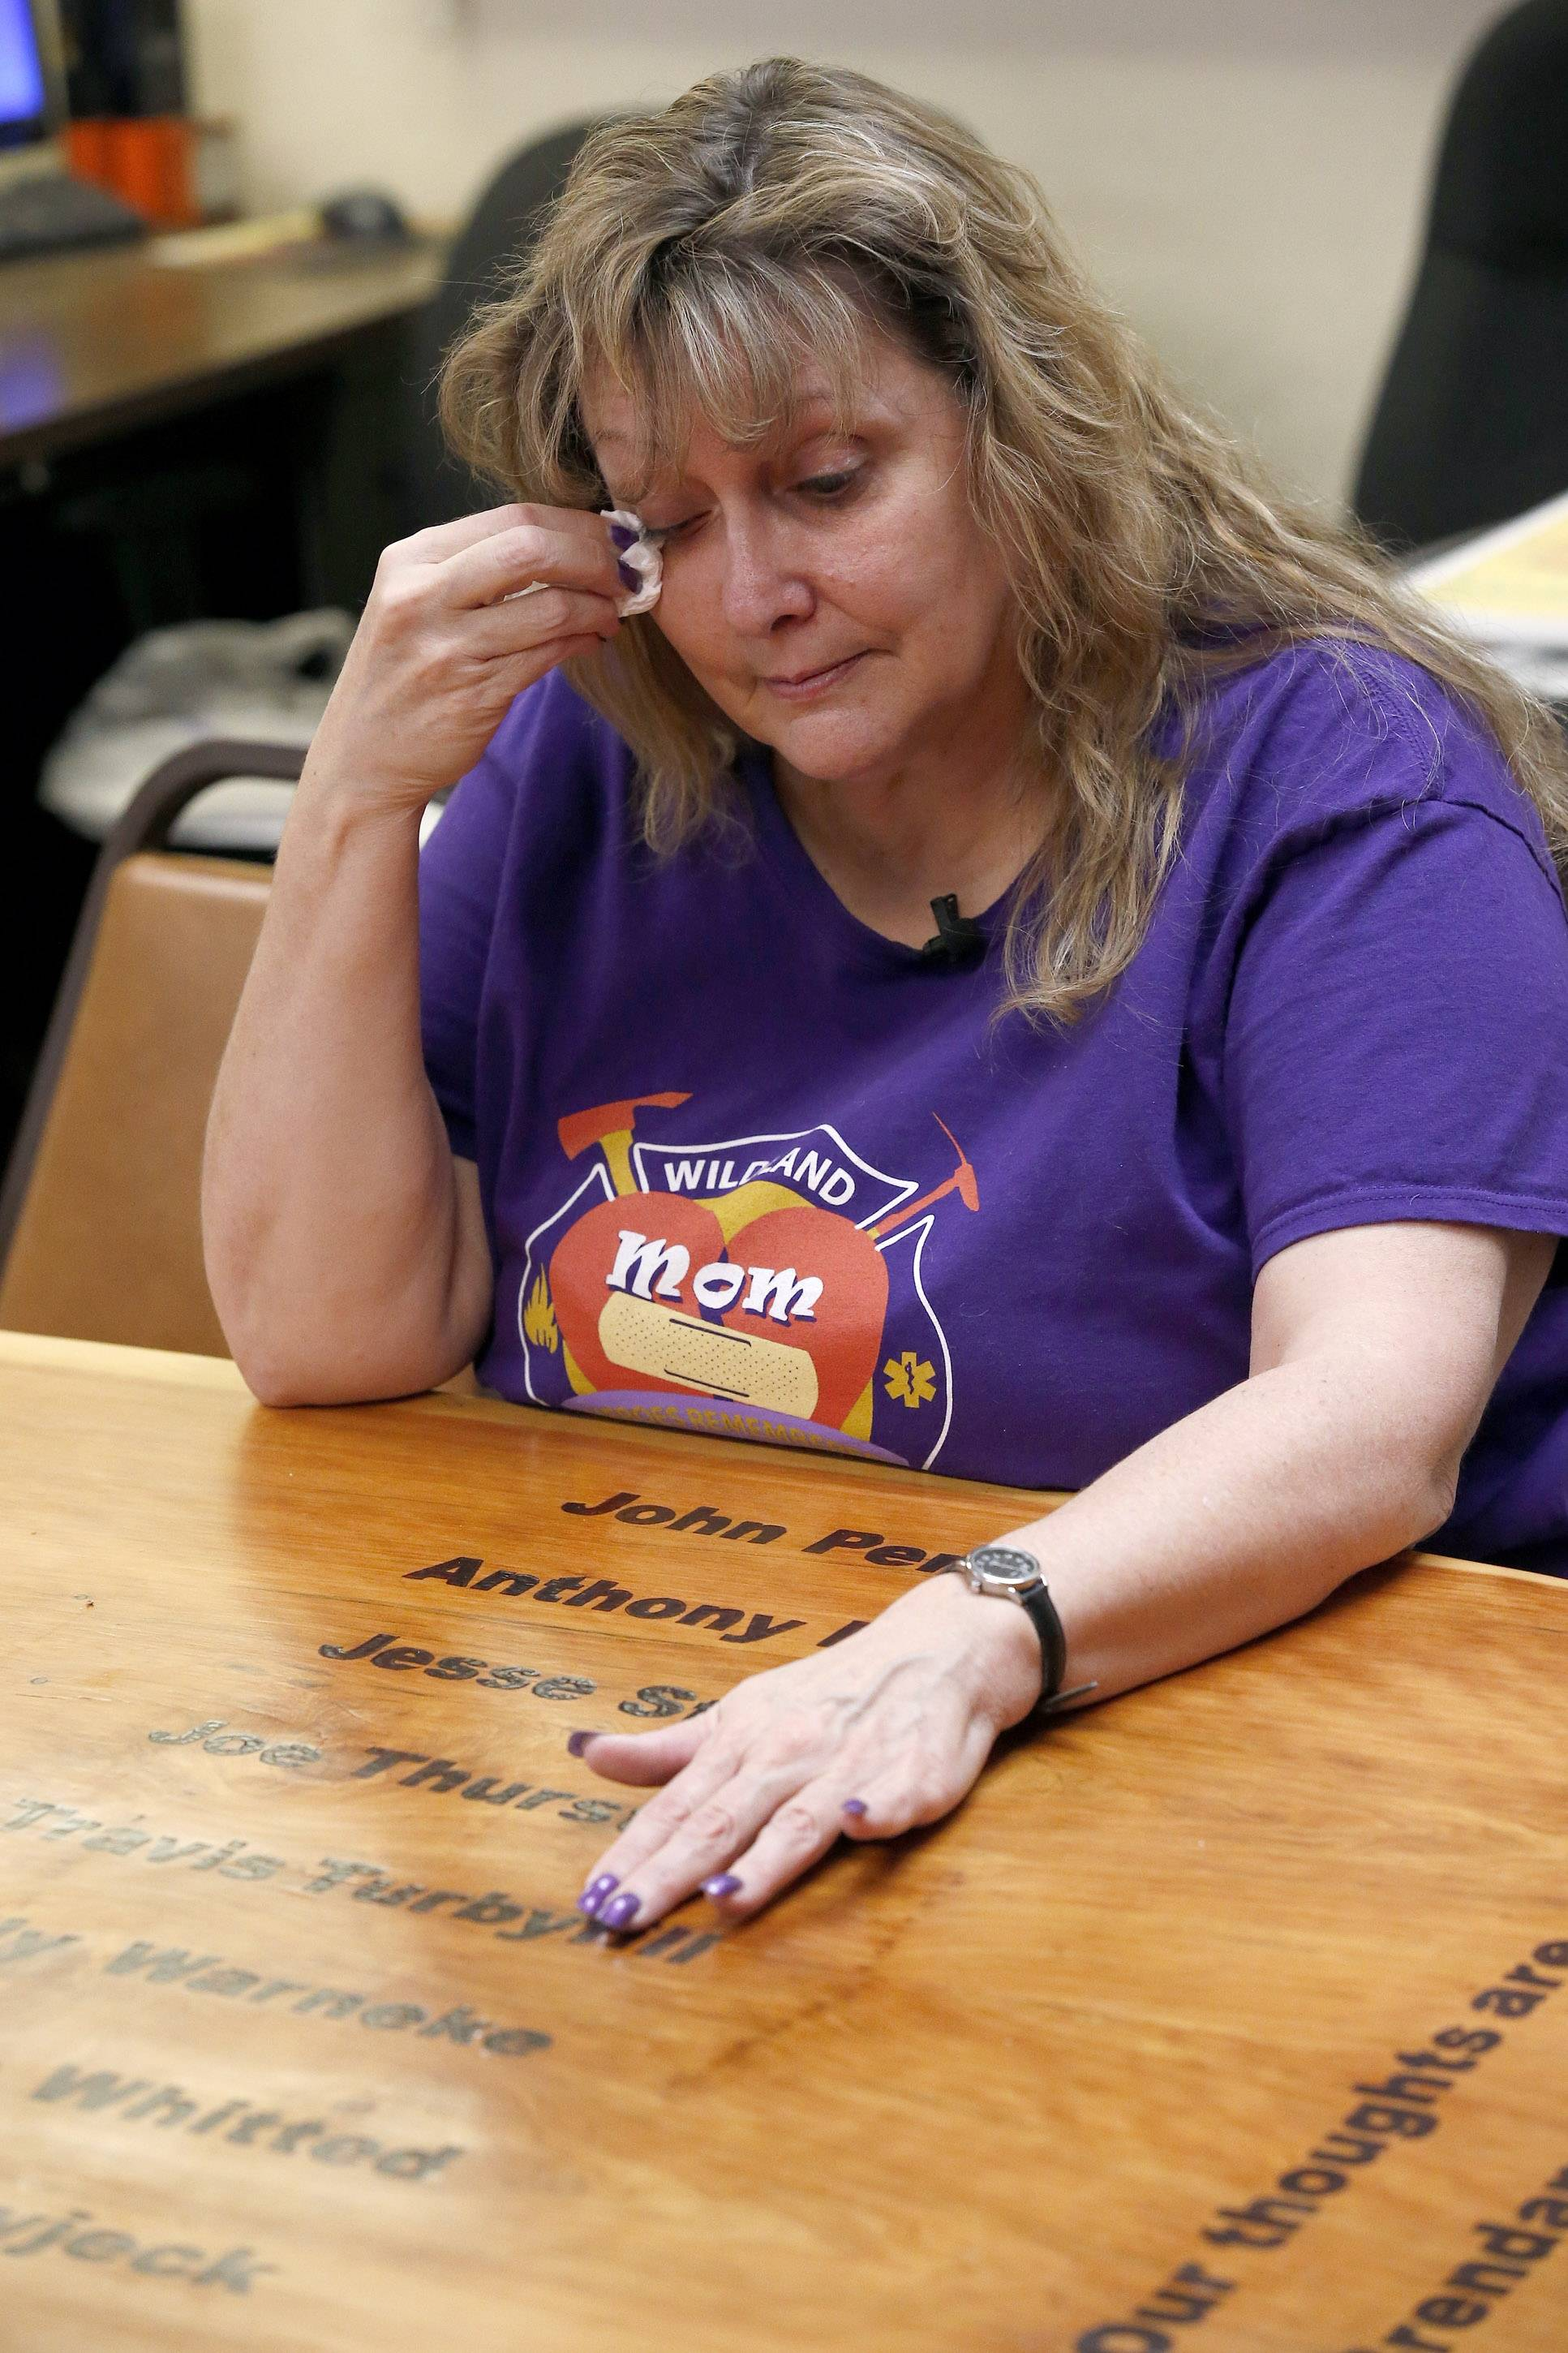 In her first visit back to the firehouse since her son's death, Colleen Turbyfill, Travis Turbyfill's mother, is overcome with emotions as she rubs her fingers over her son's name on an inscribed wooden table, as she recalls memories of her and her son, who was killed along with 18 other hotshots during a wildfire nearly a year ago, on Tuesday, June 24, 2014, in Prescott, Ariz.